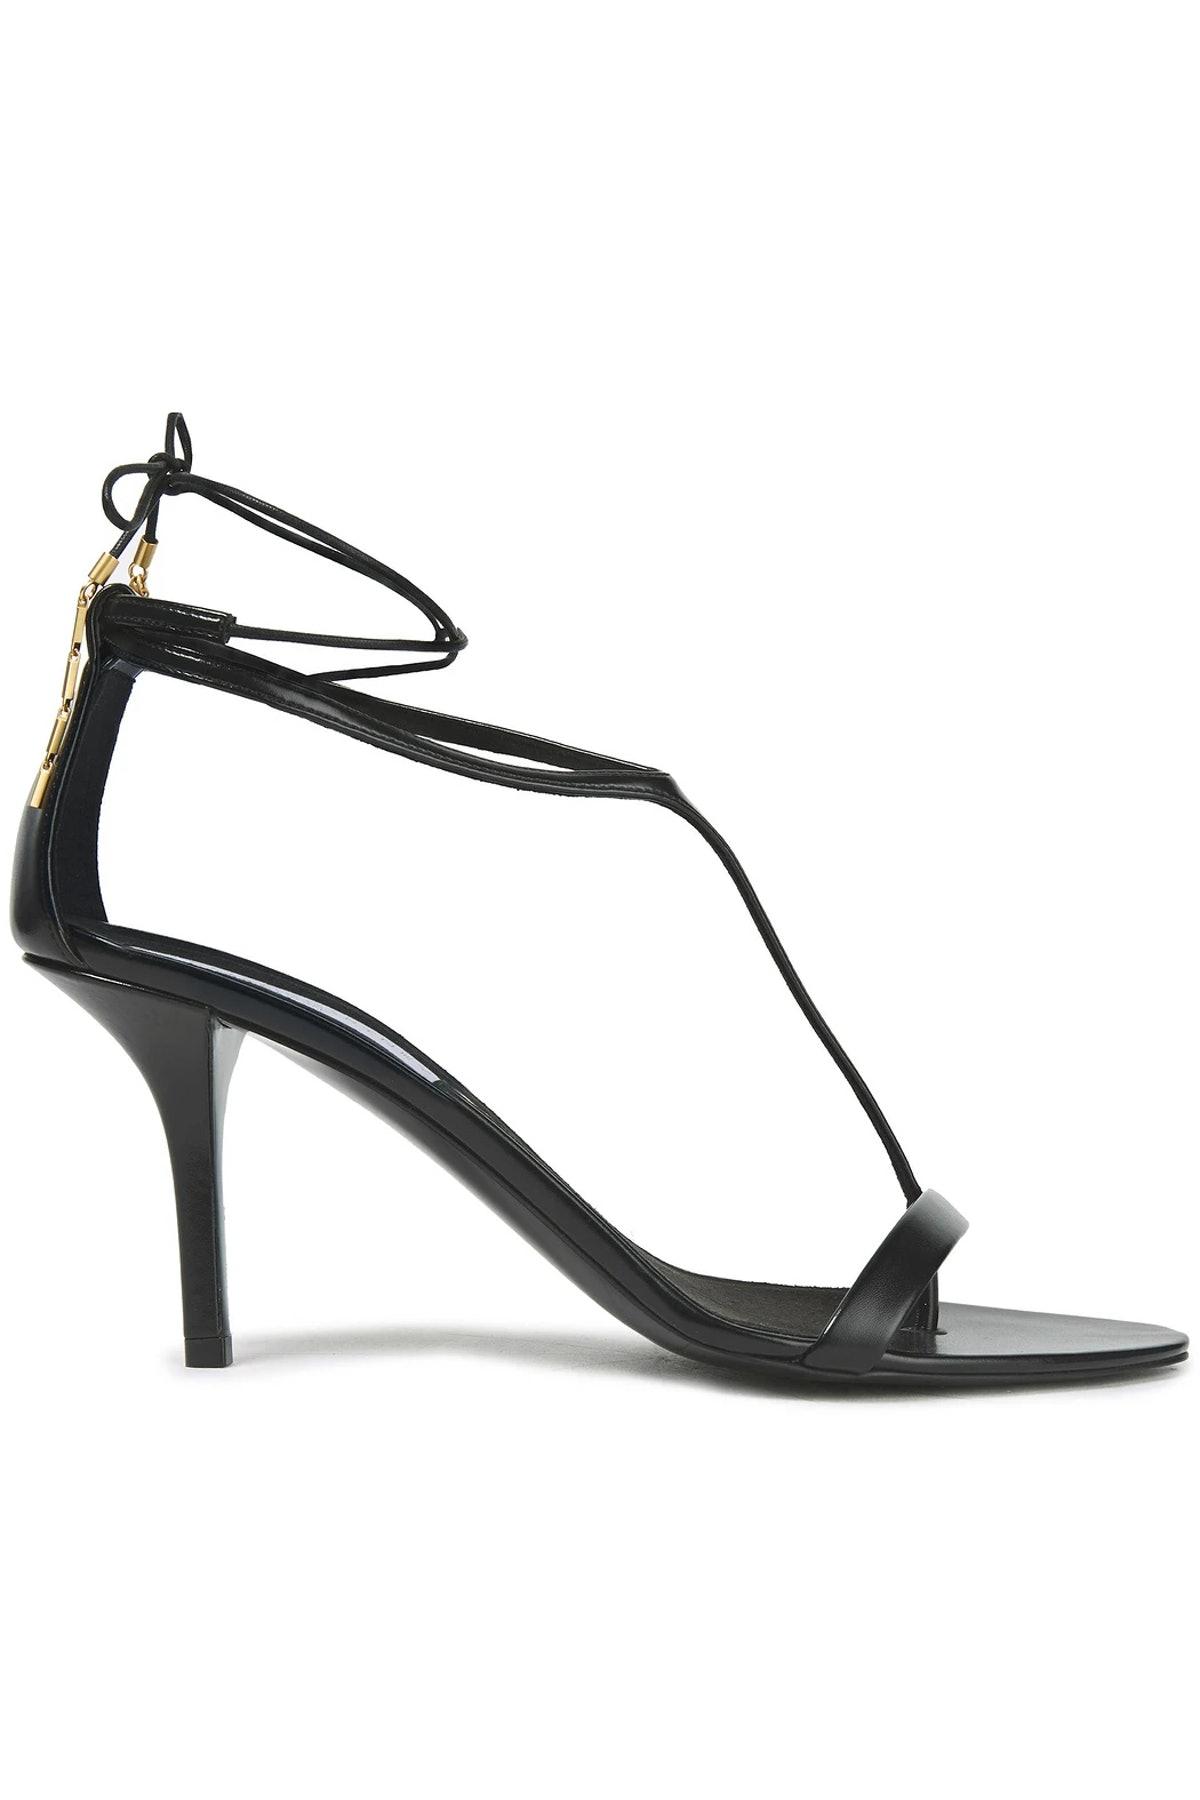 Black Chain Leather Sandals